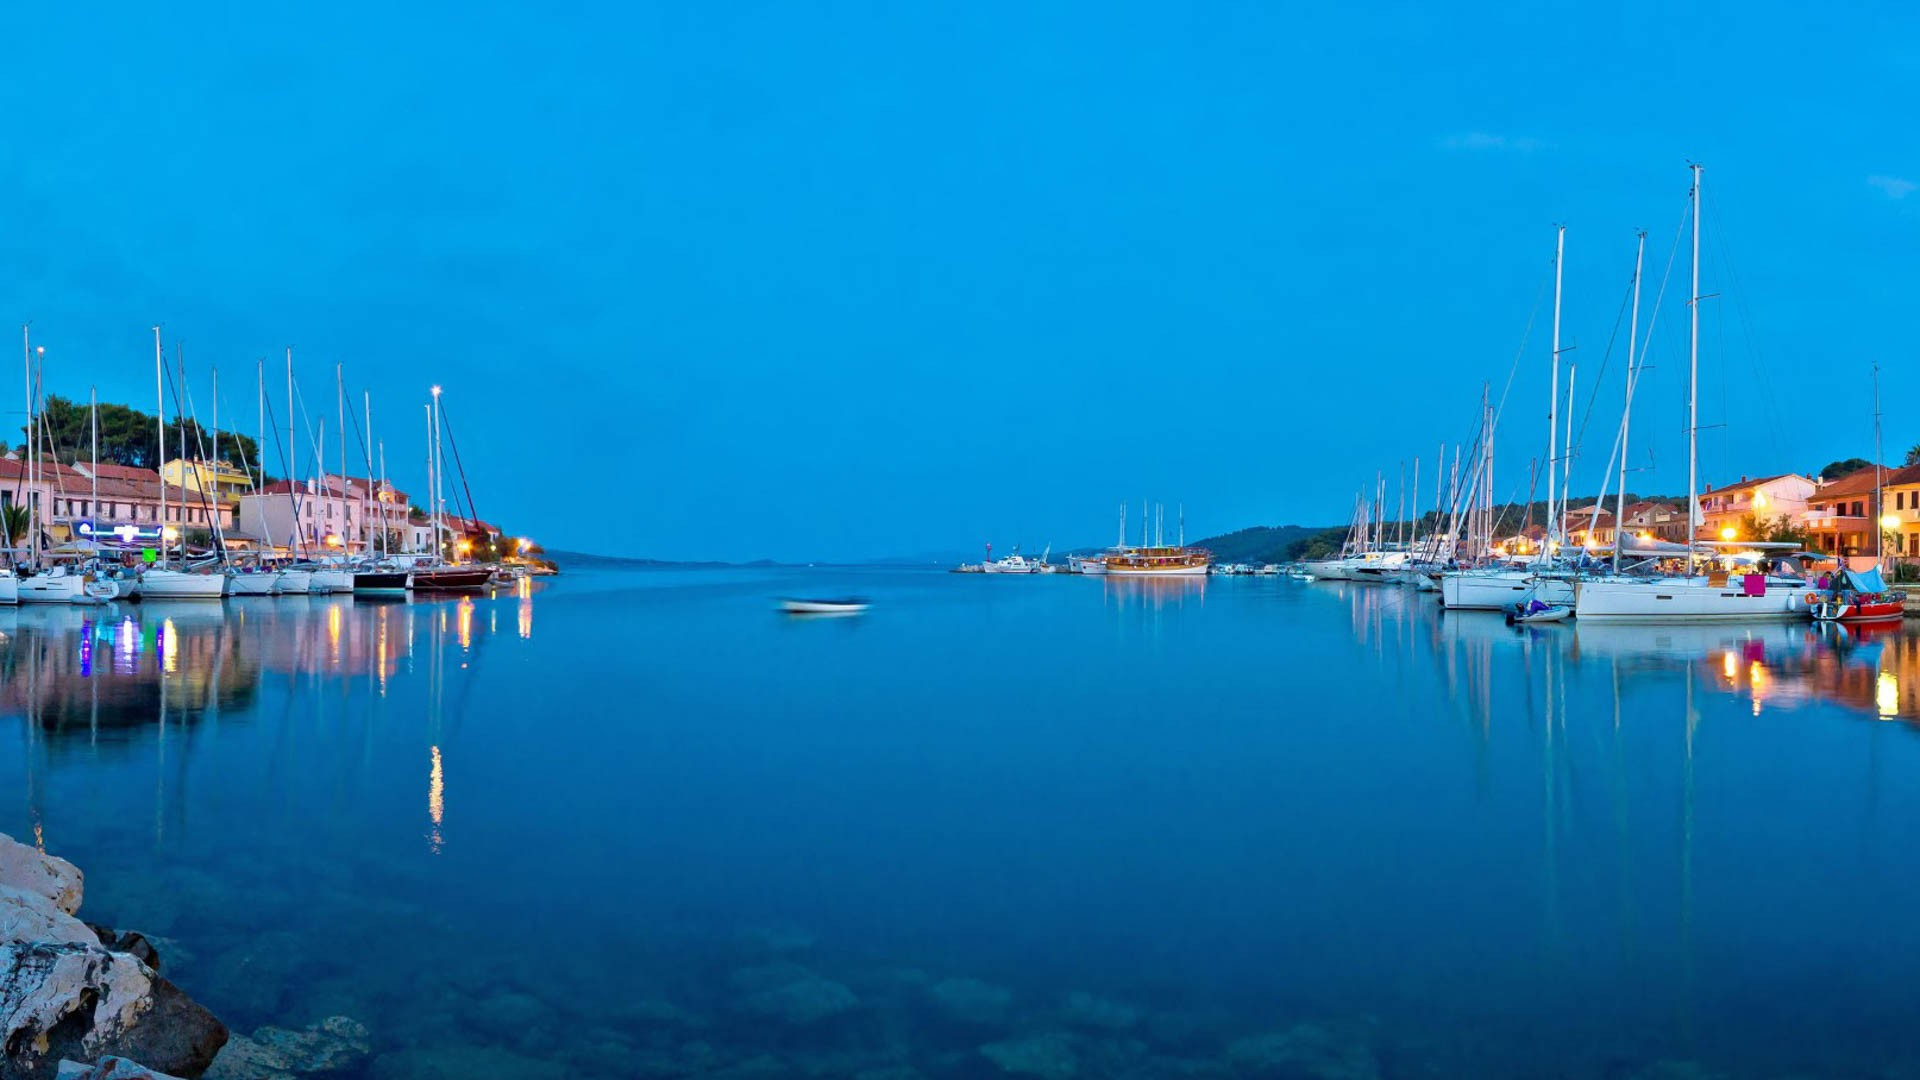 Sali - Adriatic Sea | Croatia Cruise Croatia Cruise